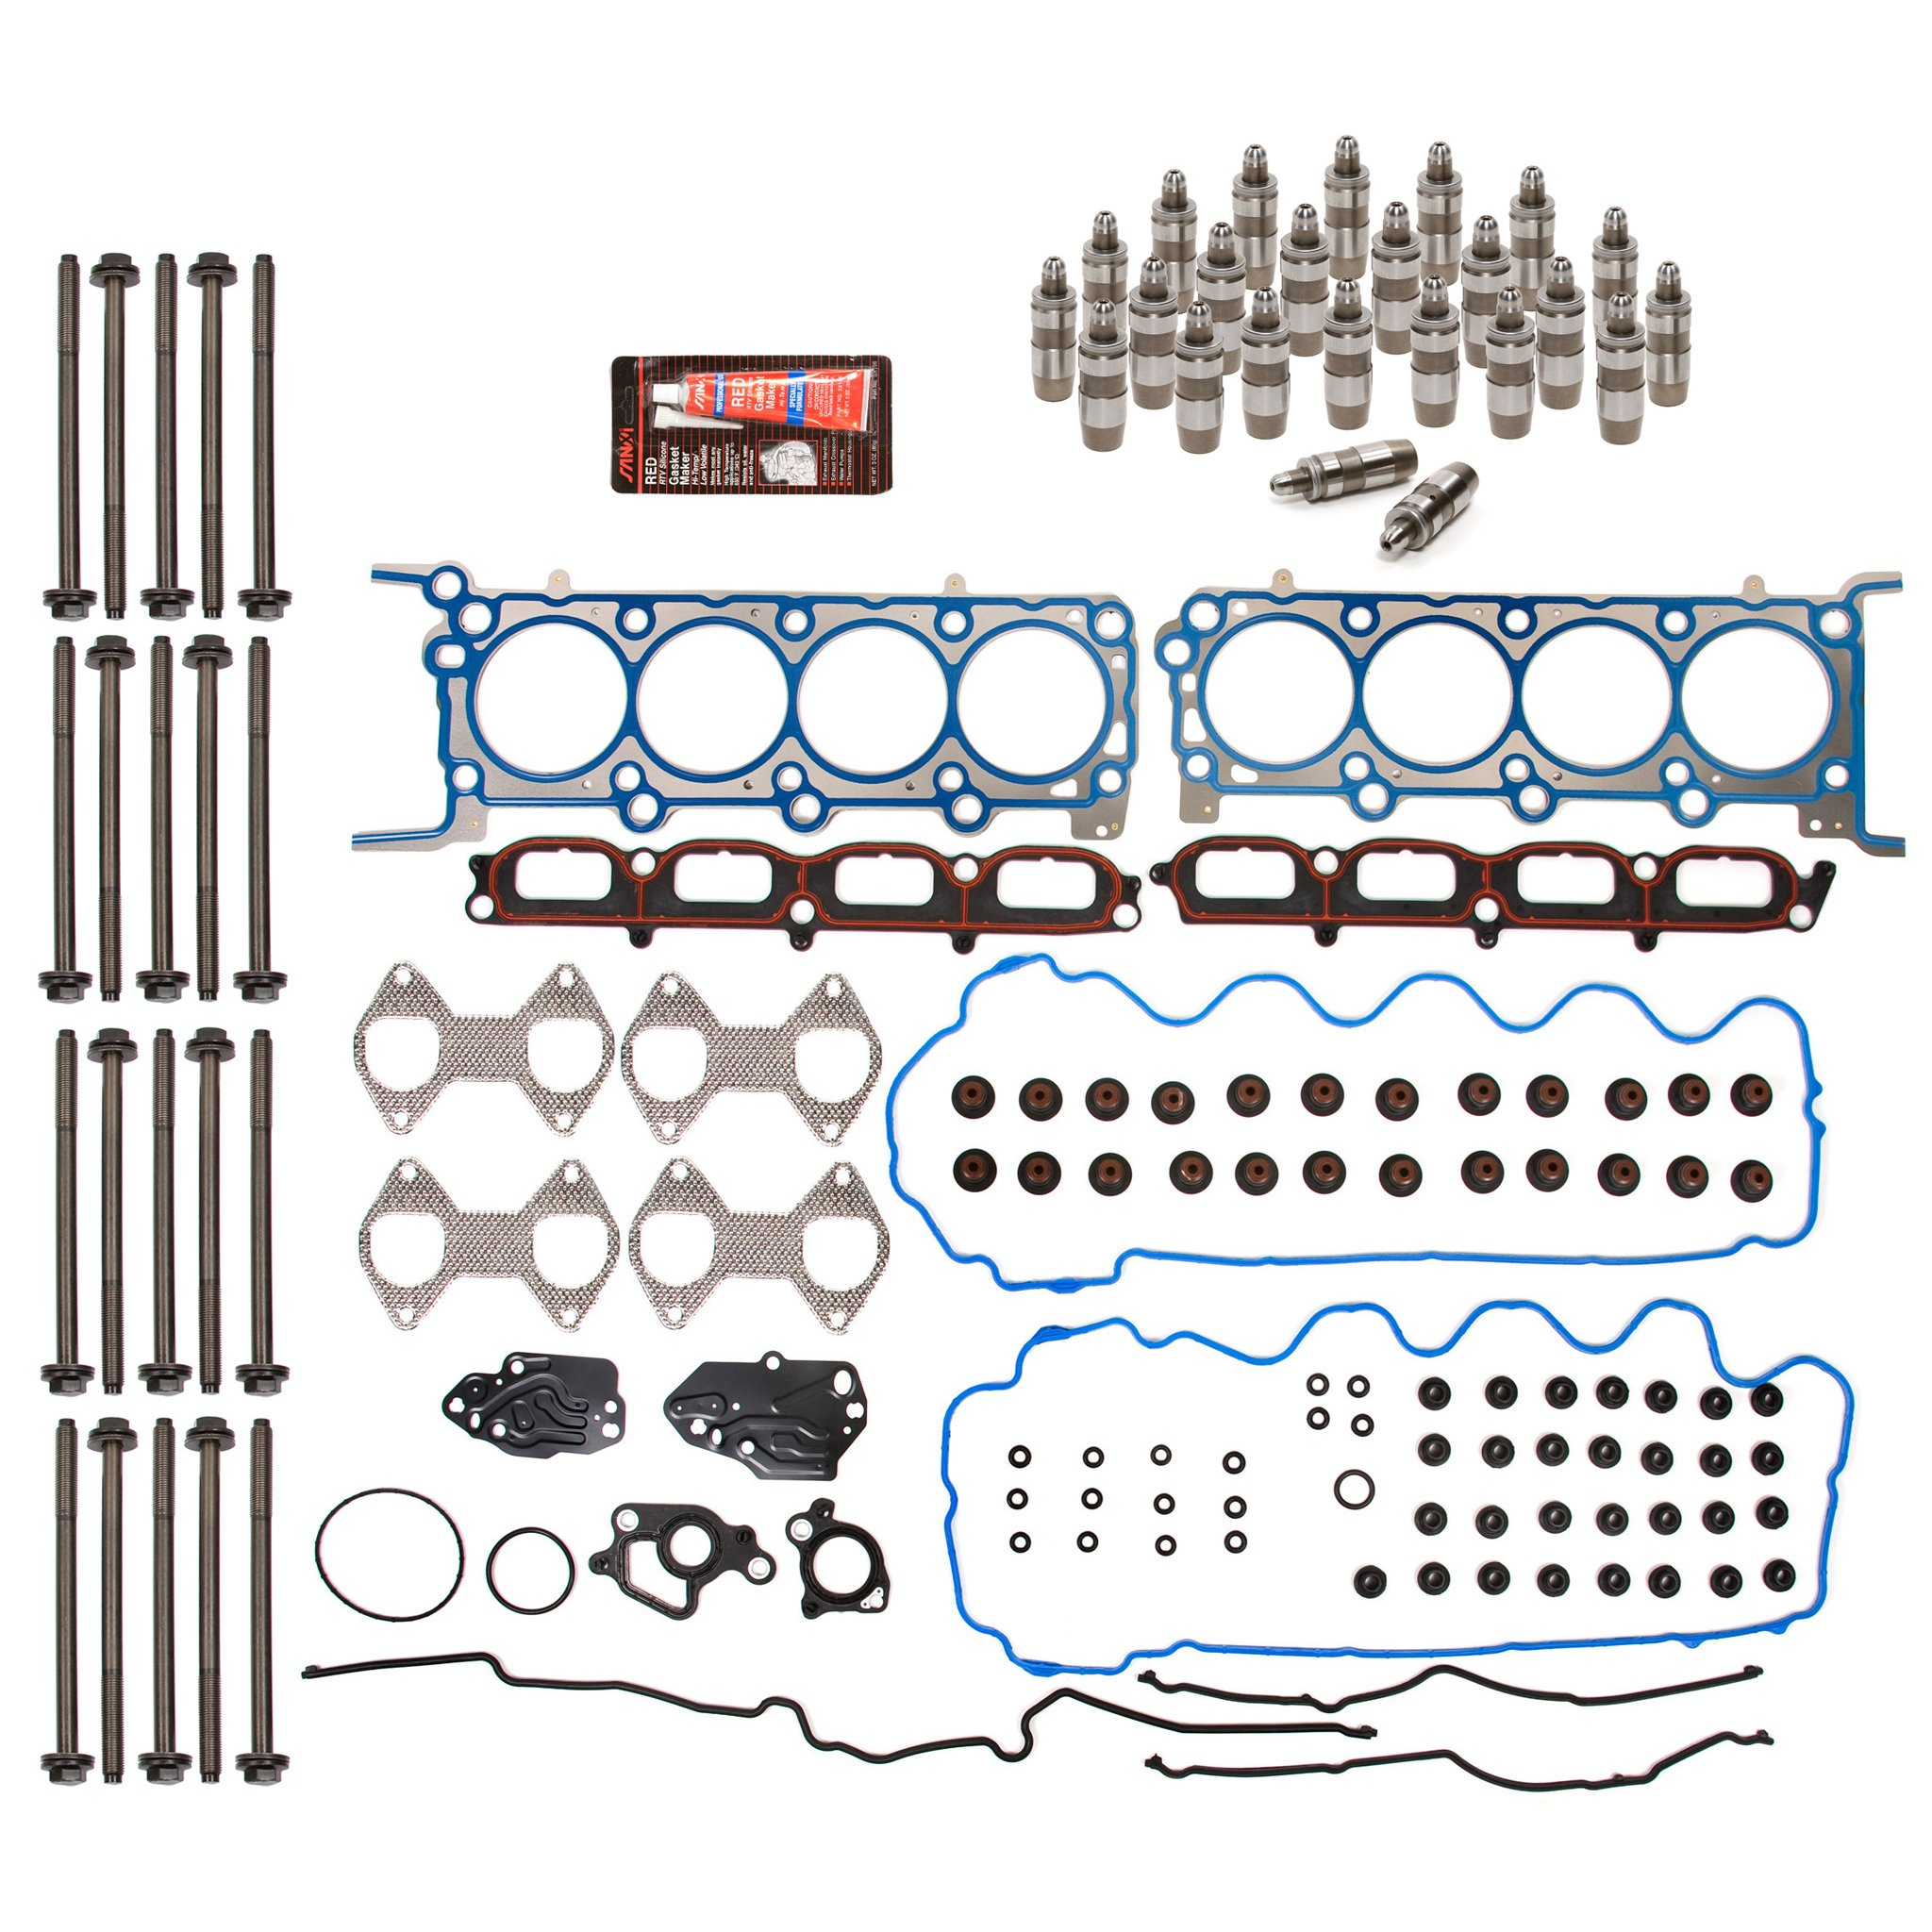 Evergreen HSHBLF8-21200 Lifter Replacement Kit fits 04-06 Ford Expedition F Series Lincoln 5.4 TRITON Head Gasket Set, Head Bolts, Lifters by Evergreen Parts And Components